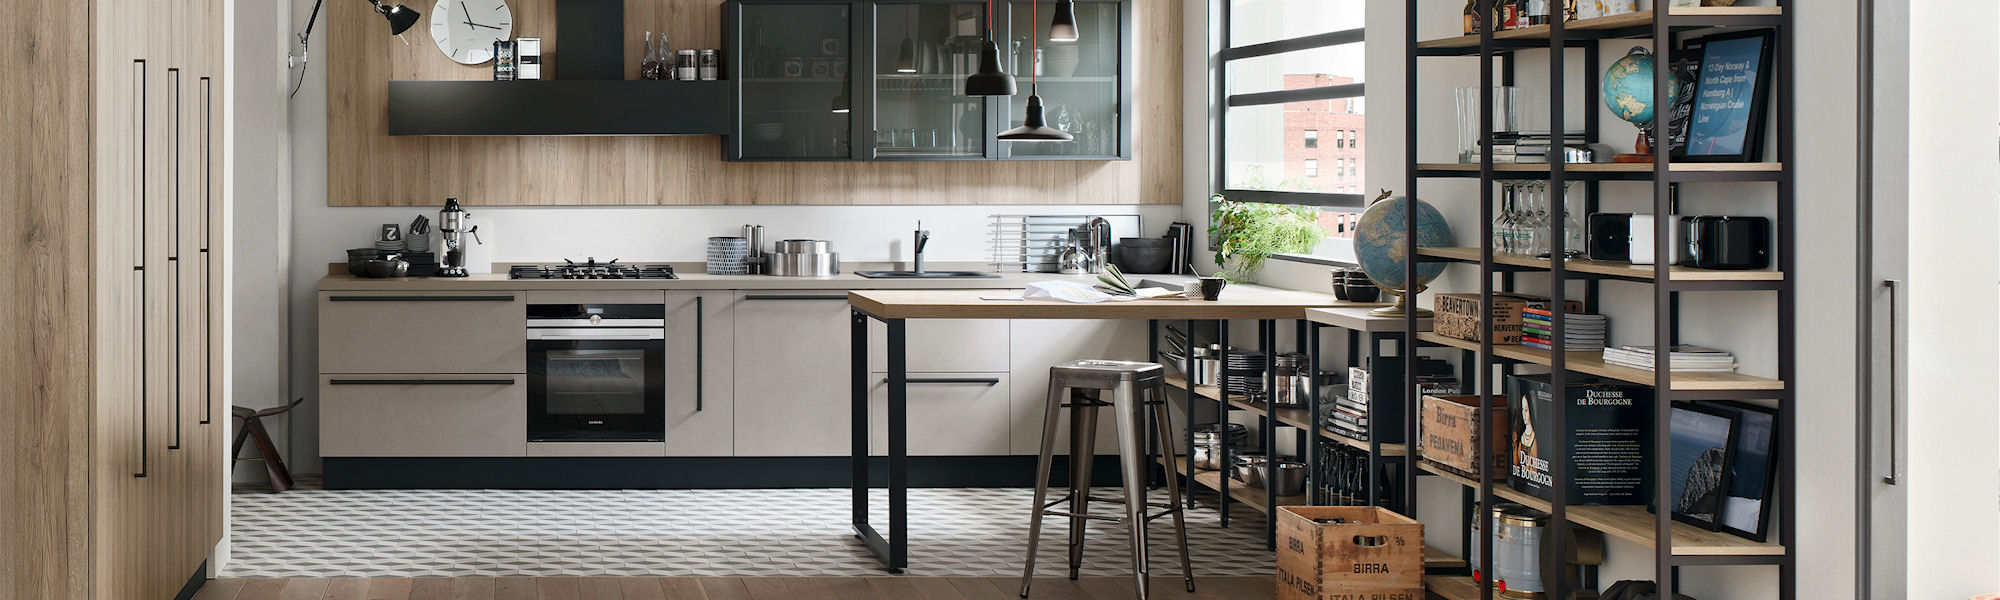 Veneta Cucine: Metropolitan - Company news, Focus on | Interior Mebel